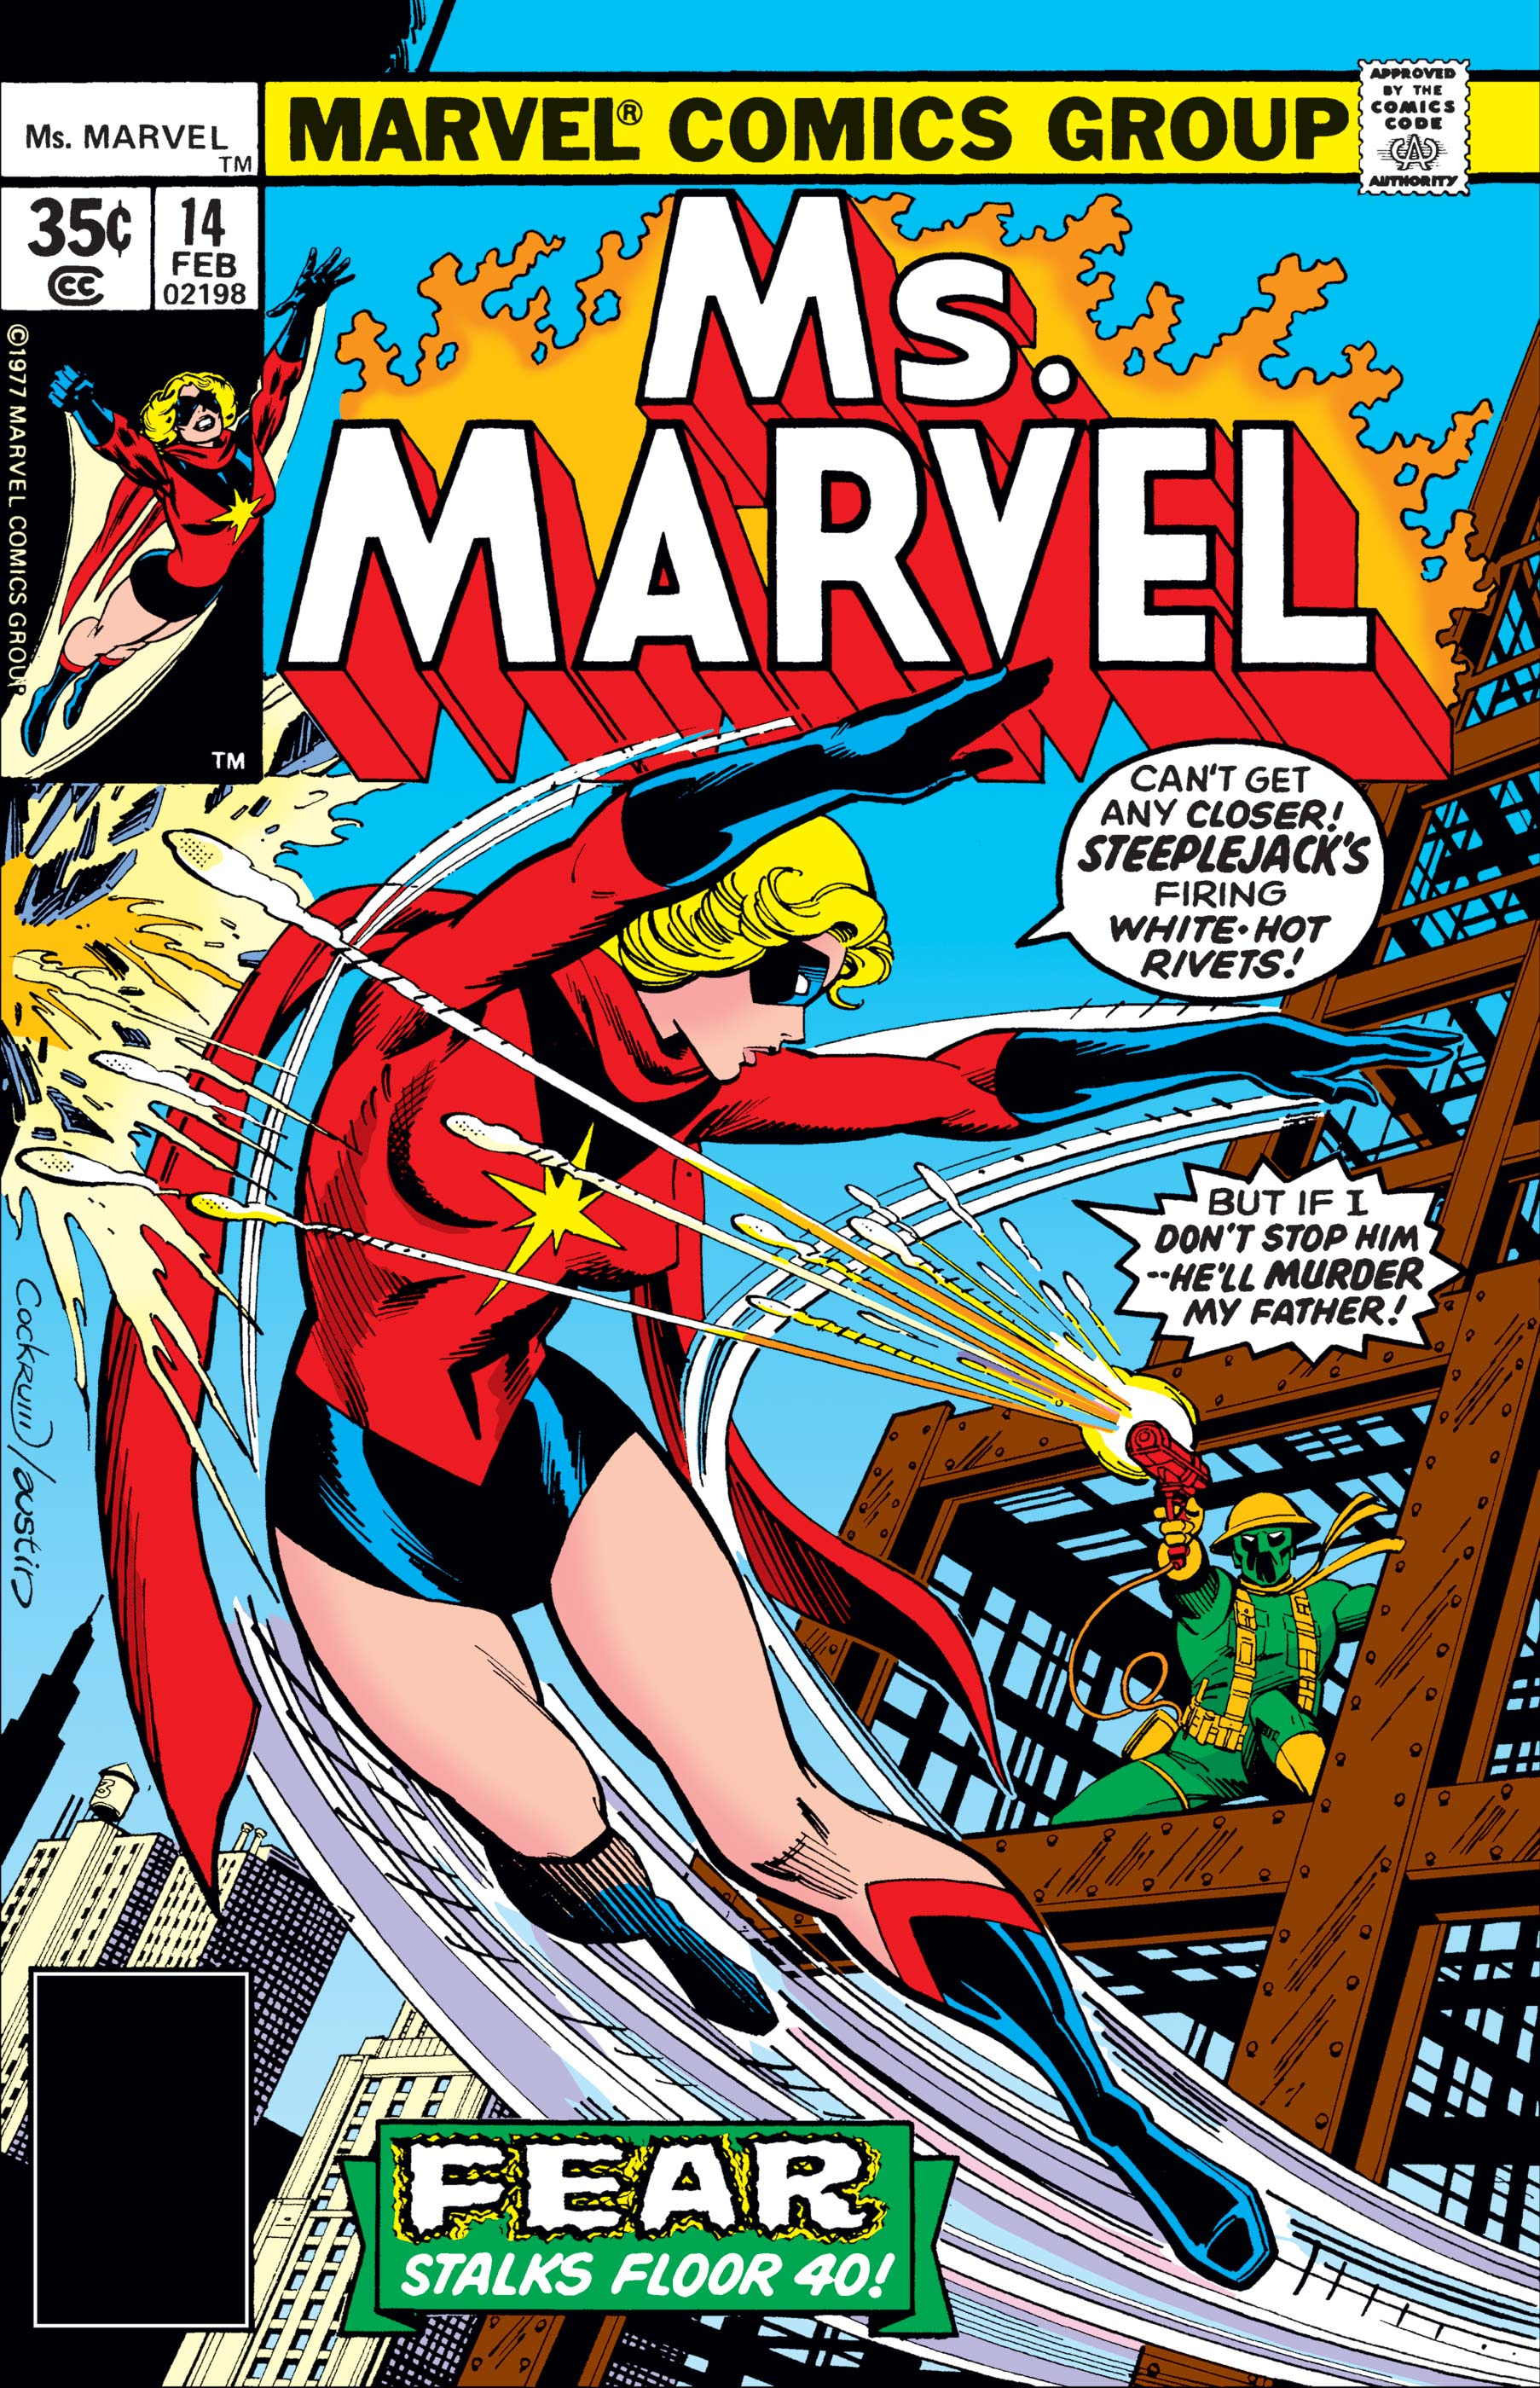 Ms. Marvel (1977) #14